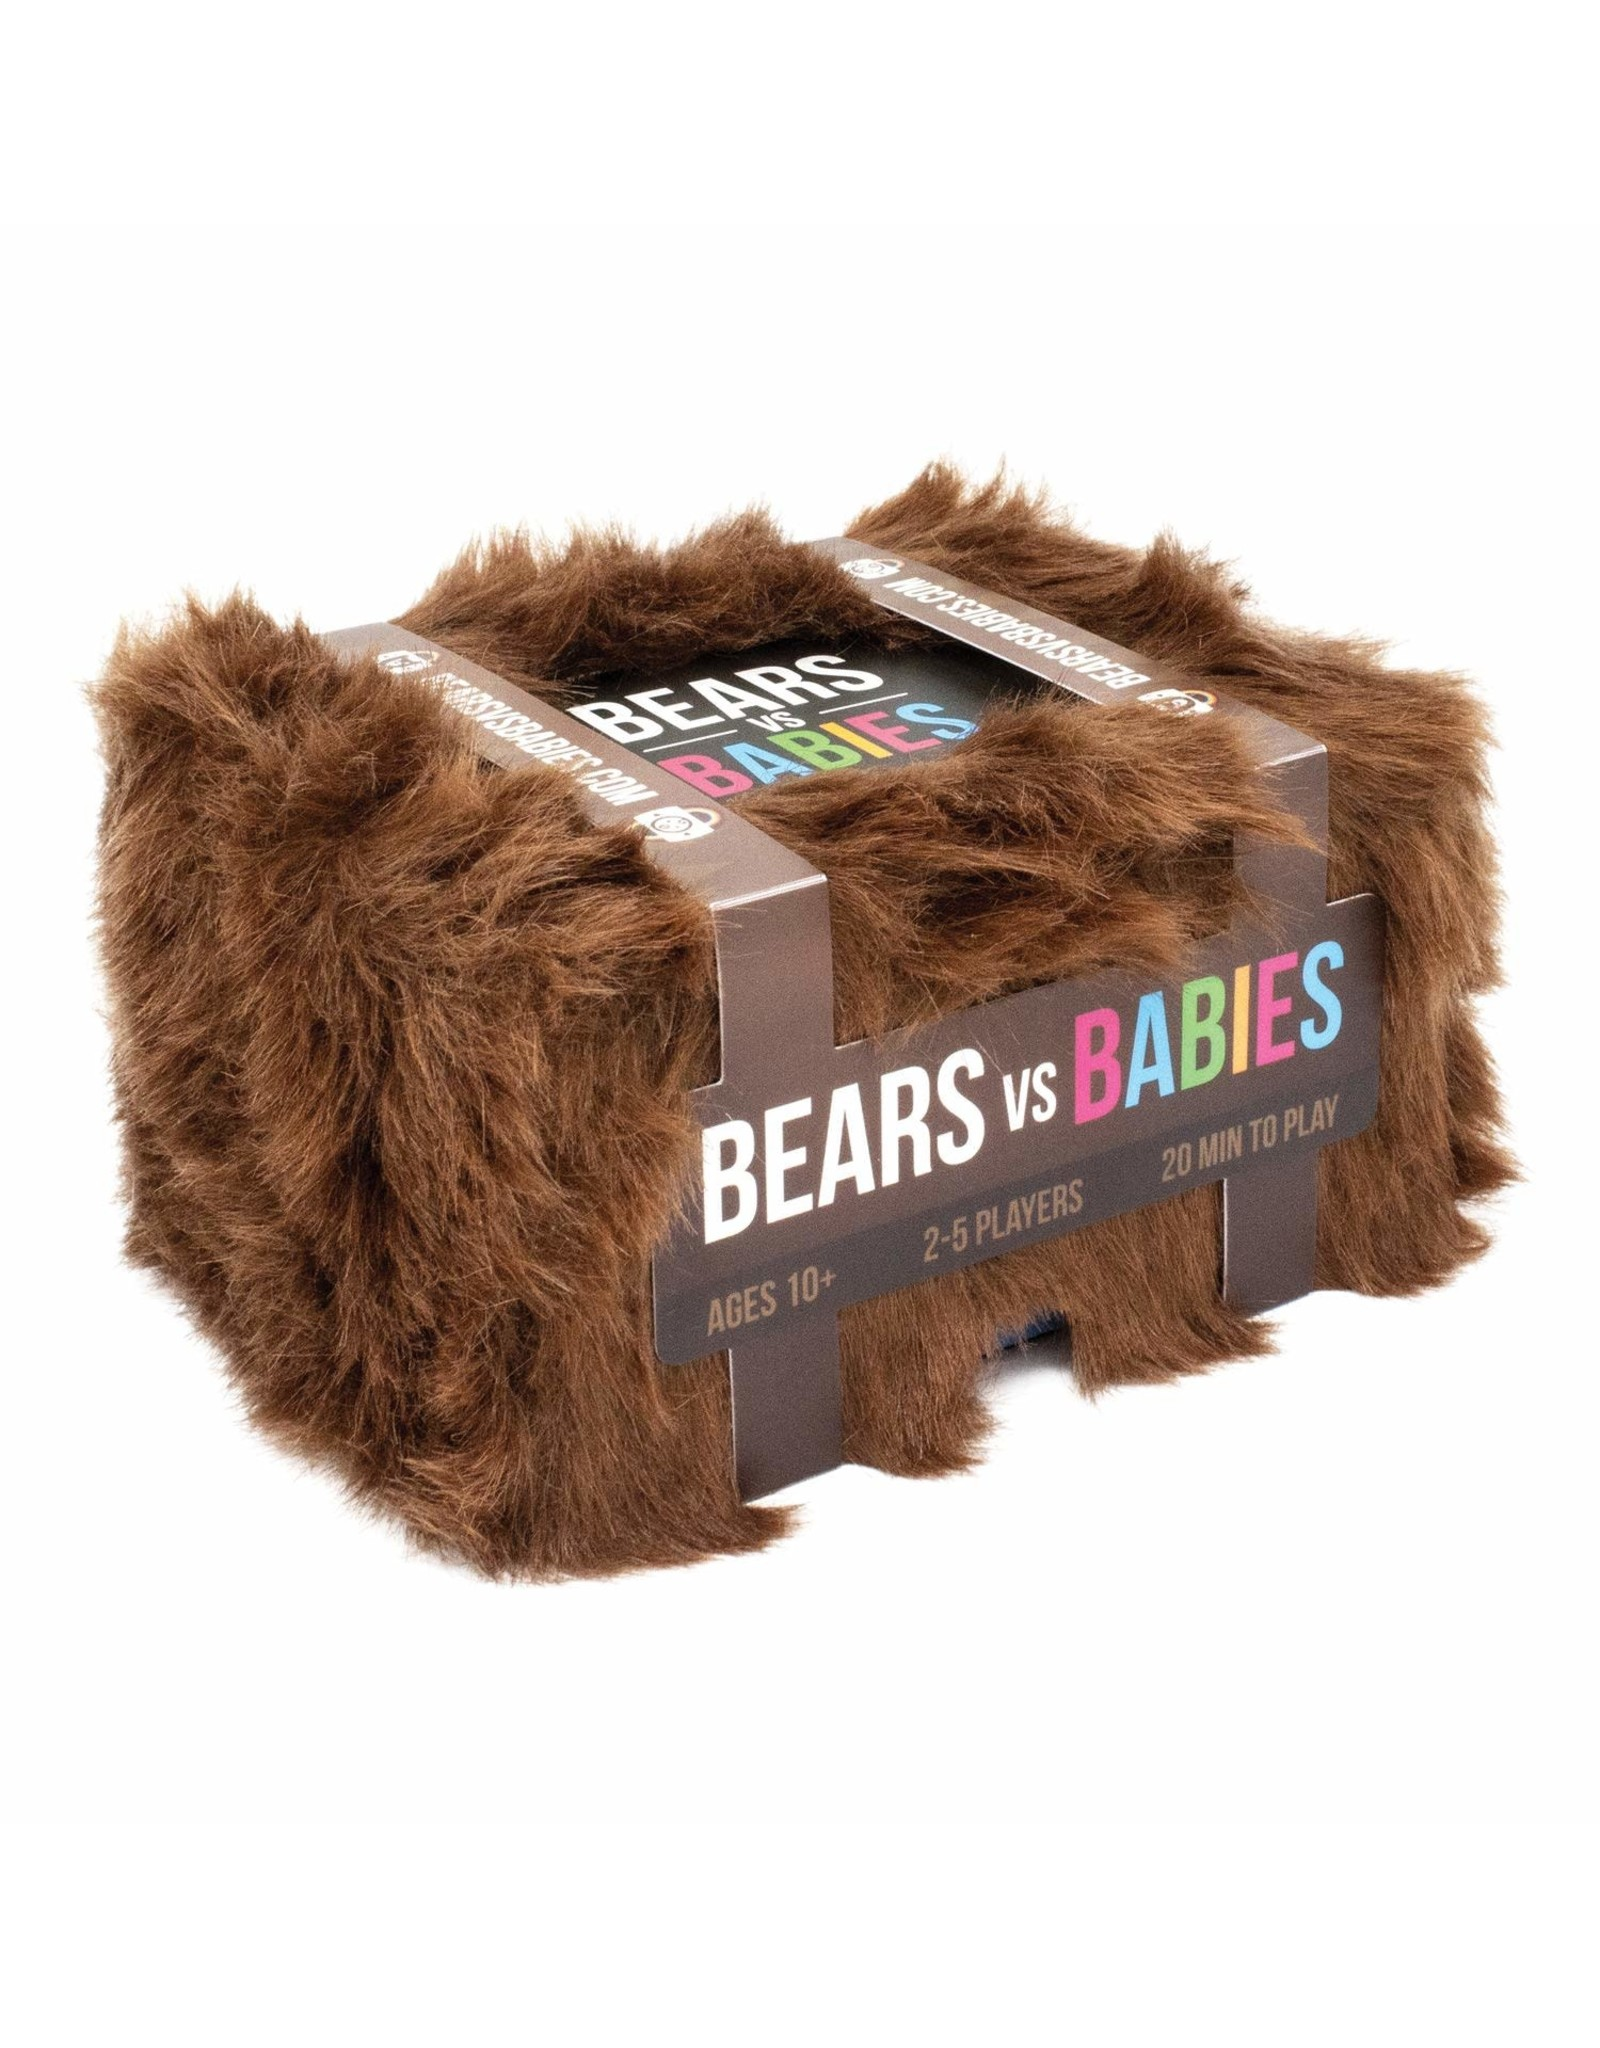 Exploding Kittens Bears vs Babies